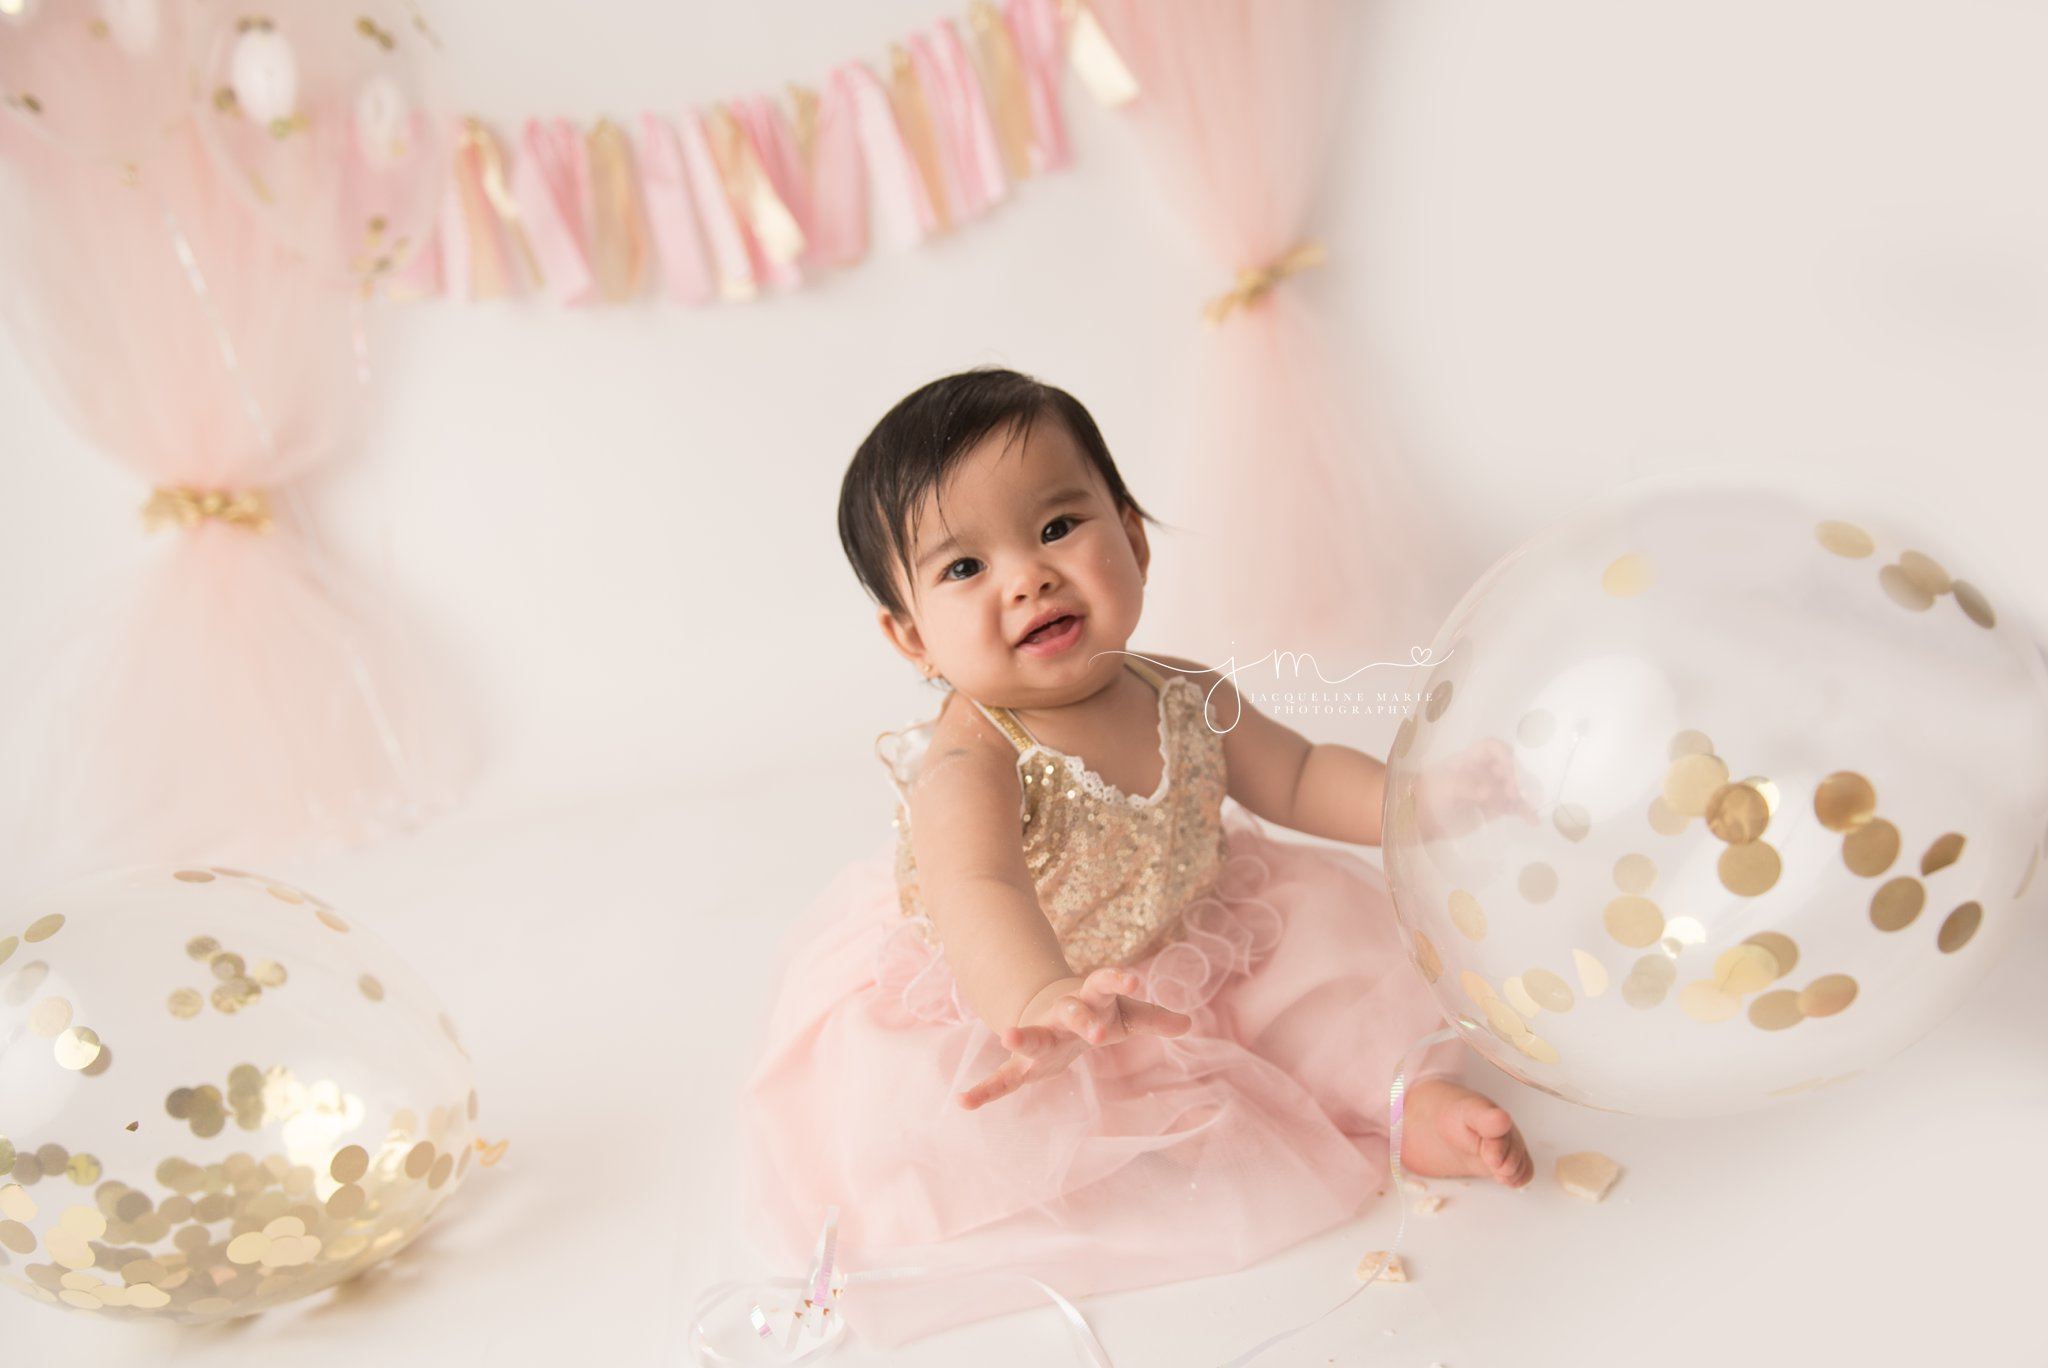 1 year old girl wears gold and pink dress while holding confetti balloon in columbus ohio baby photography studio for cake smash pictures